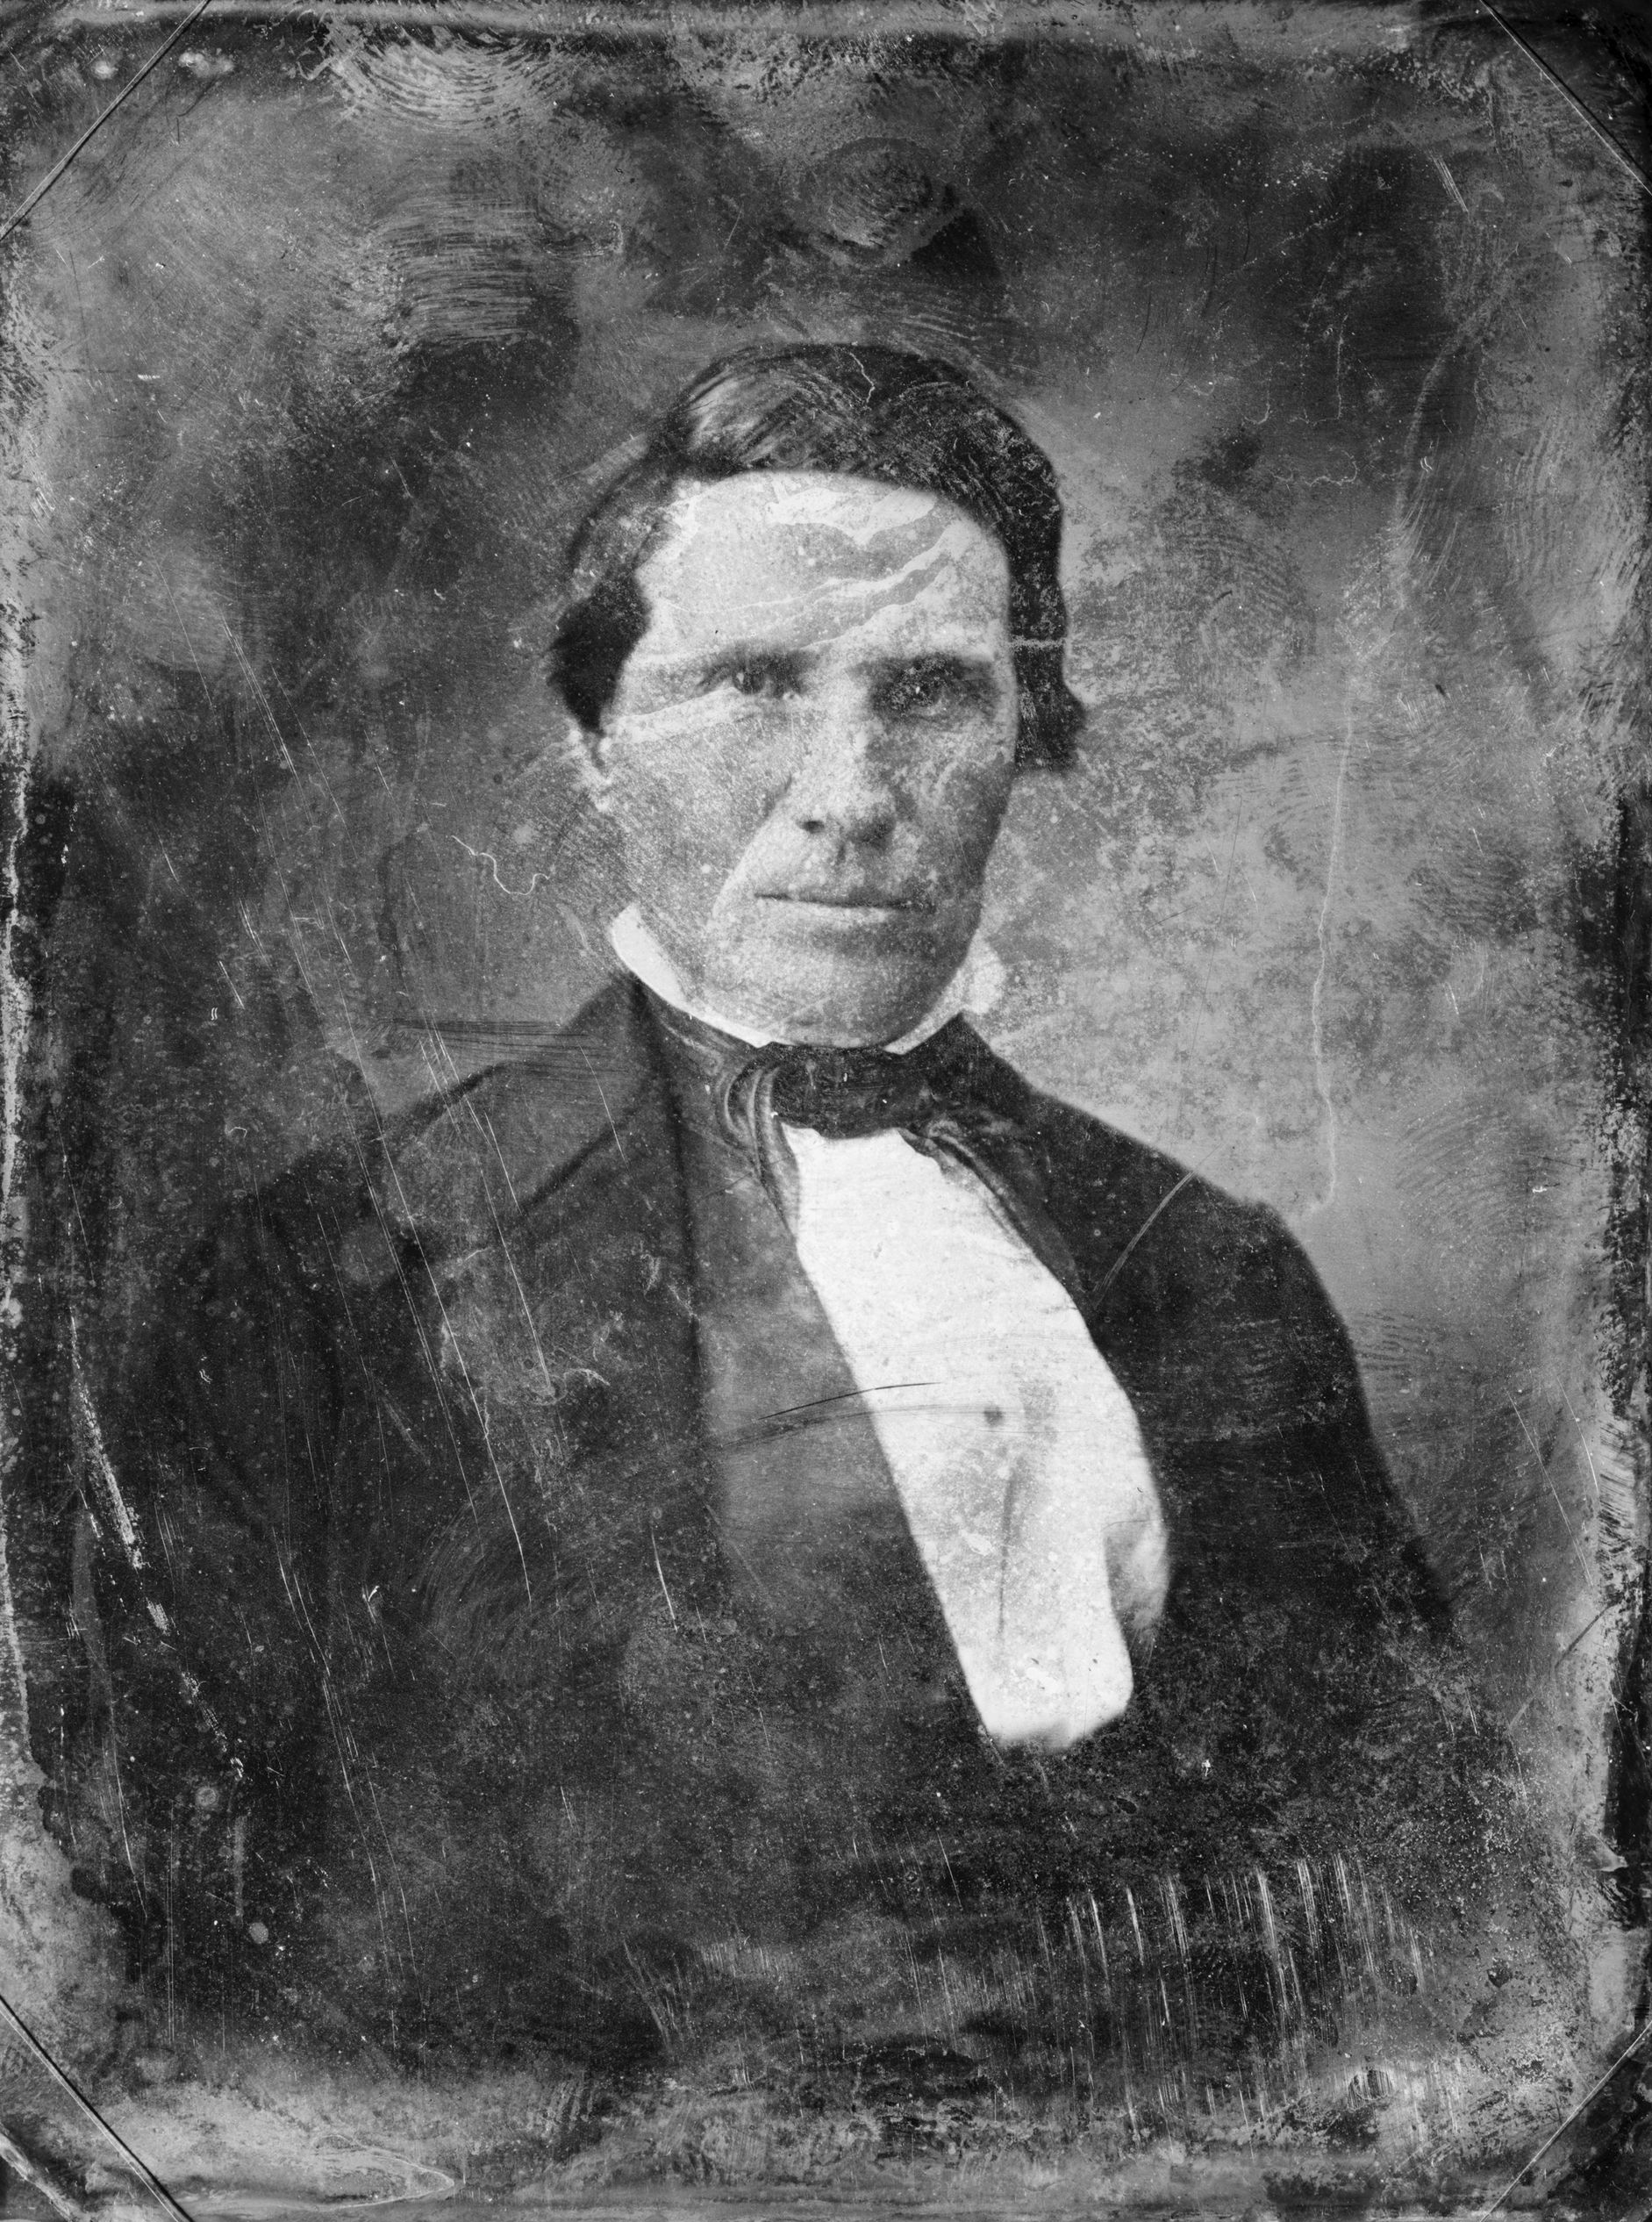 alexander william doniphan - wikipedia